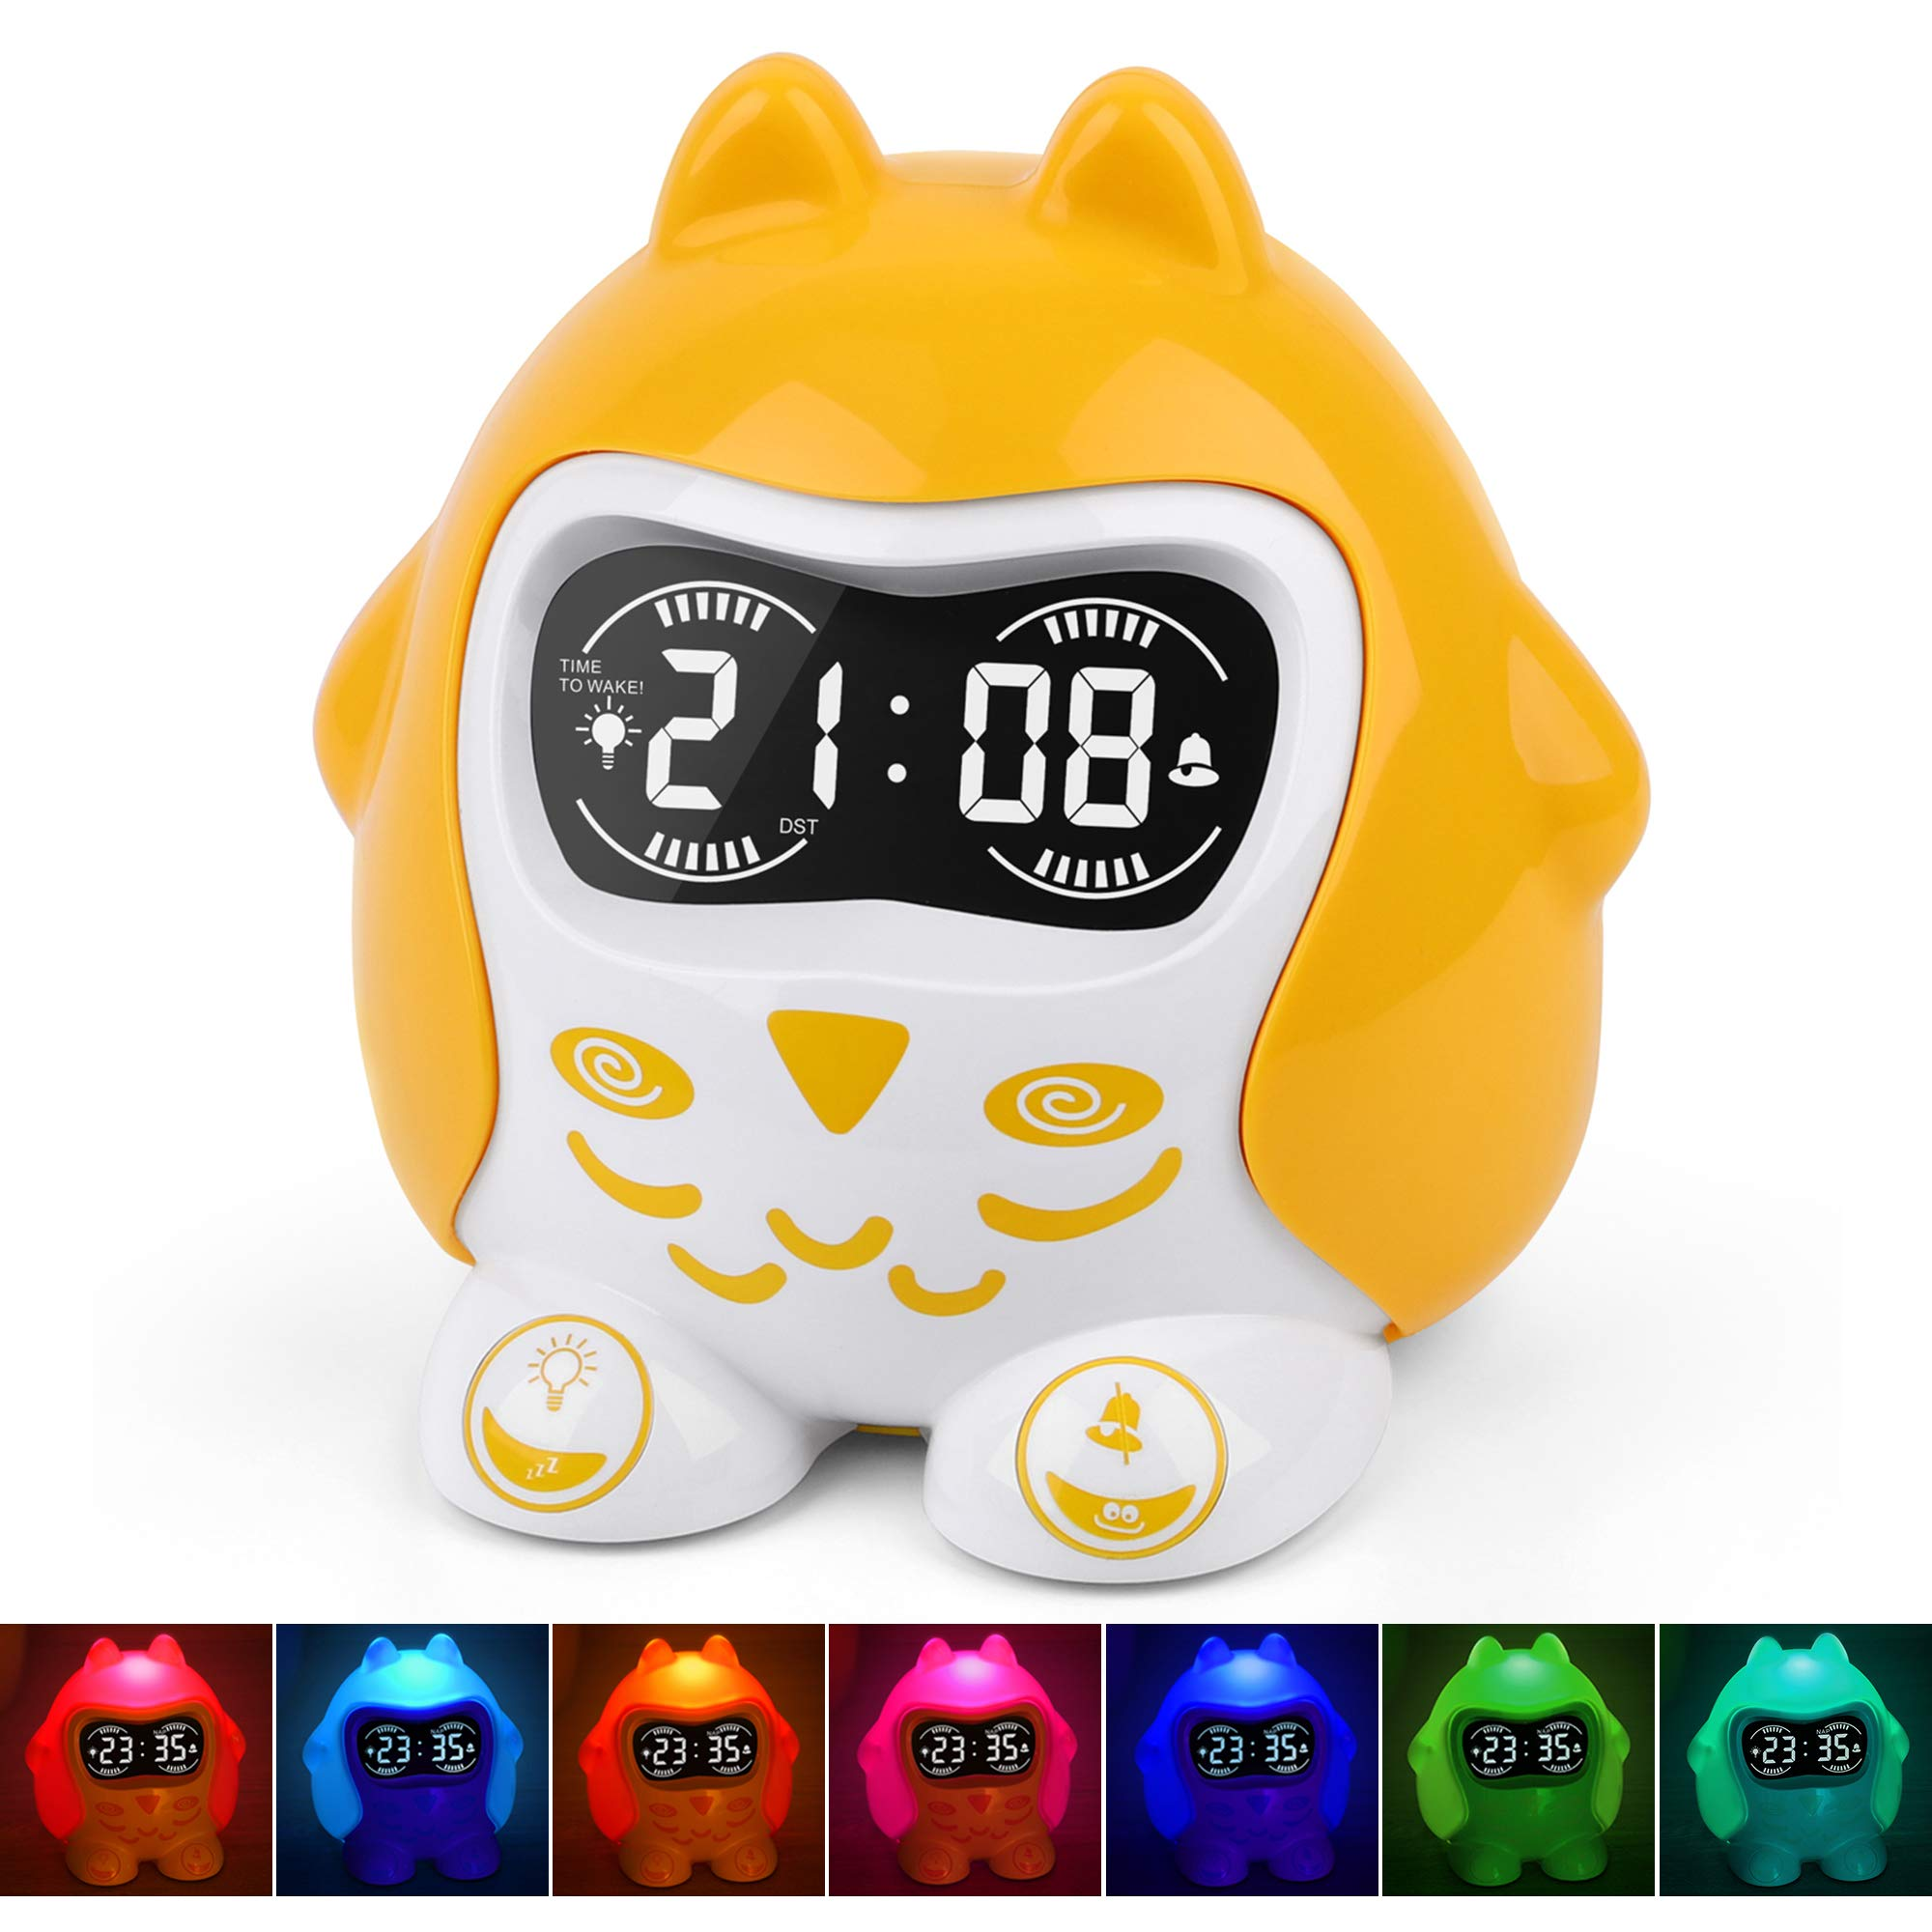 Kids Alarm Clock, White Noise Sound Machine with 9 Sounds, Sleep Trainer & Time to Wake Alarm Clock, 7-Color Night Light, Dimmer, Nap Timer, Battery/Outlet Operated, Fun Faces, 12/24 H DST, Snooze